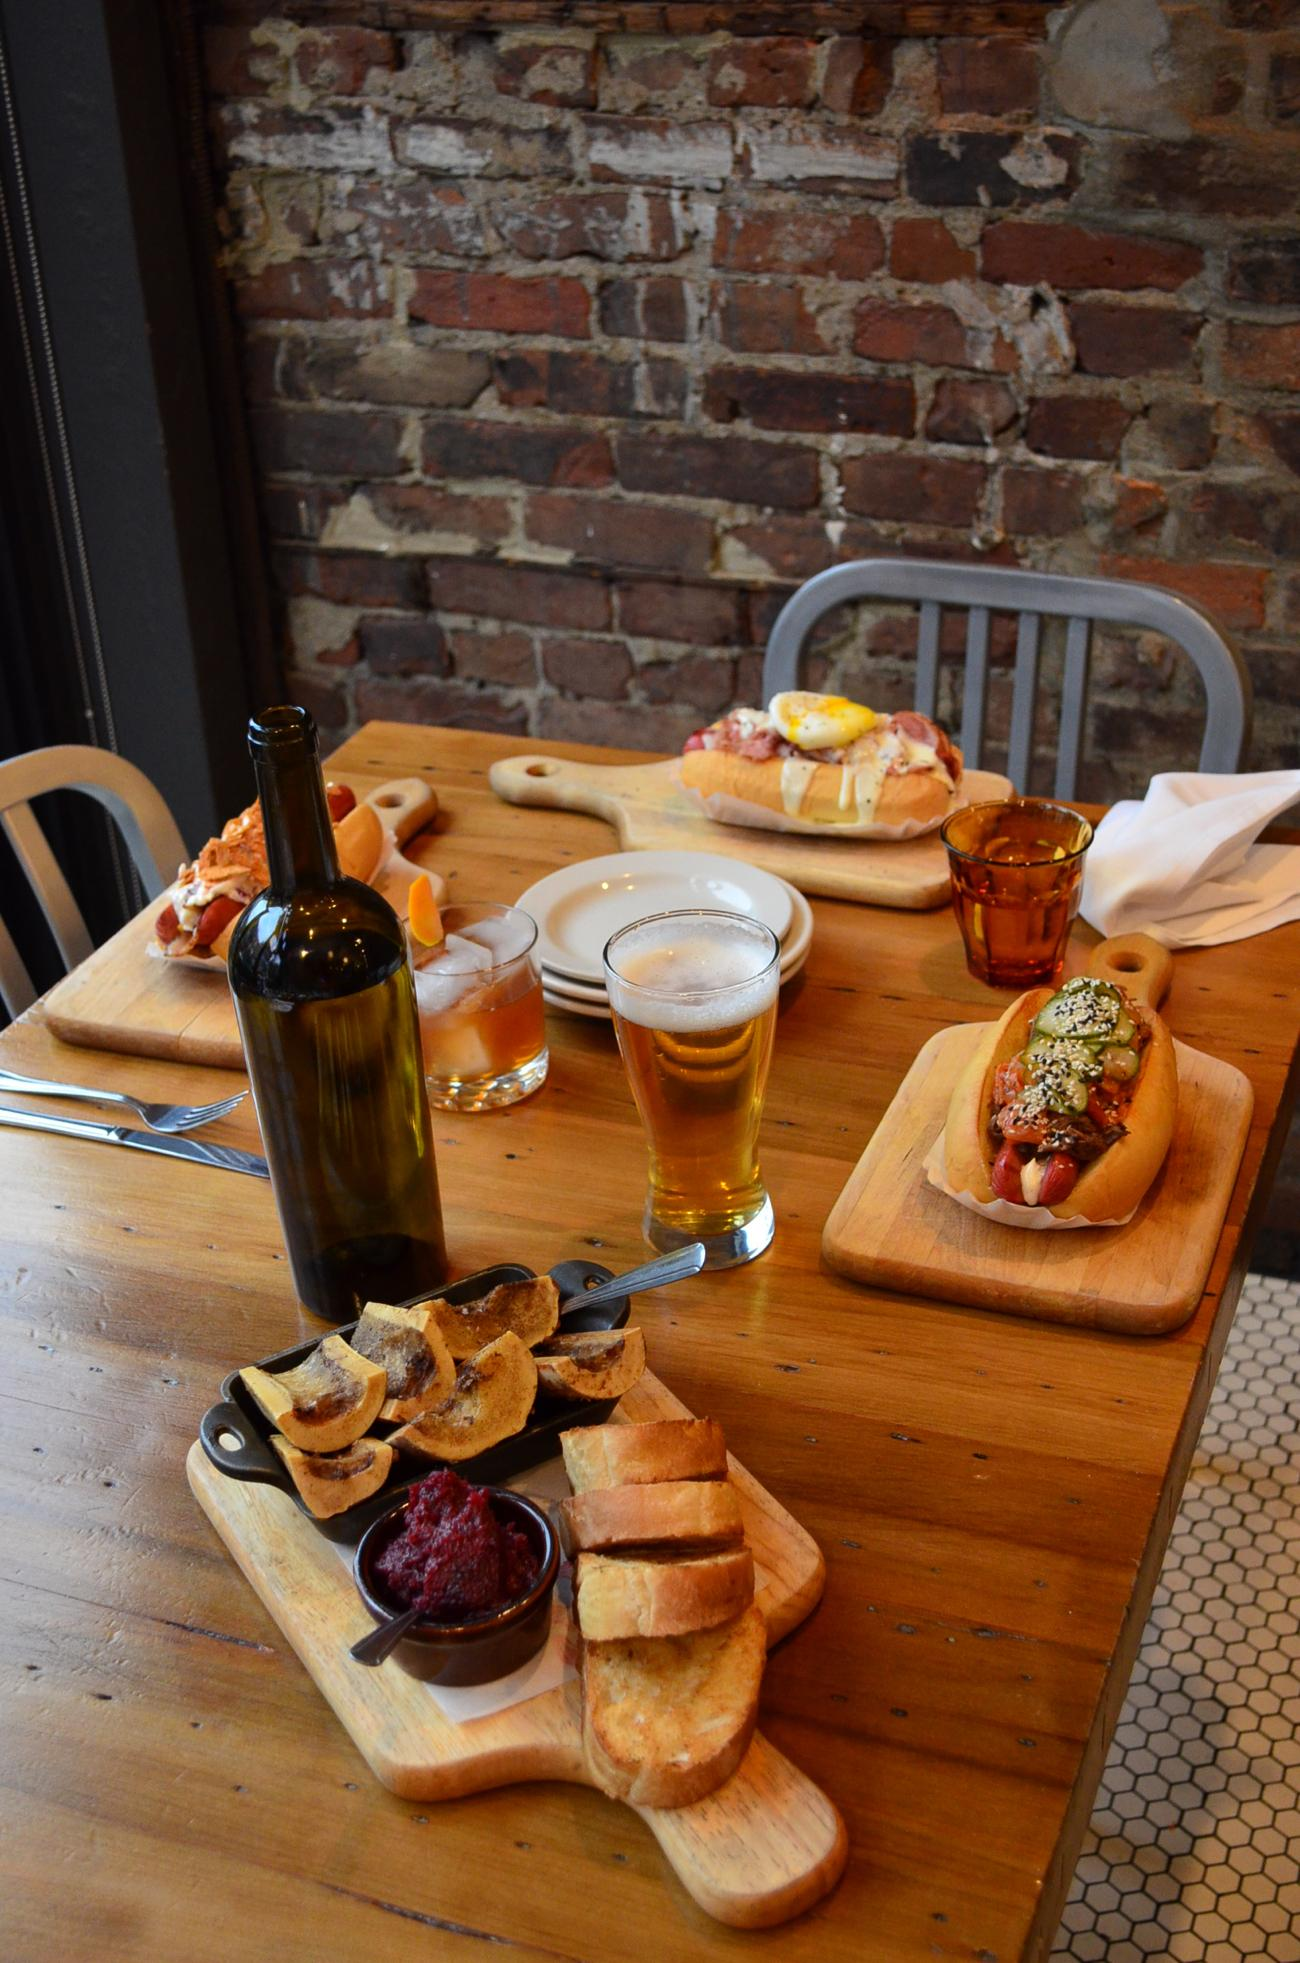 "PLACE: Senate Pub (OTR location) / ADDRESS: 1212 Vine Street (OTR) / EPISODE: Season 21, Episode 6: ""One Street Wonders"" / Senate Pub calls their fare ""gourmet street food,"" but Guy Fieri gives the massive, specialty hotdogs a catchier name: winner wieners. For the full Triple D experience, try the Korean hot dog with braised short rib, kimchi, and pickled cucumbers. / Image: Leah Zipperstein // Published: 8.18.19"